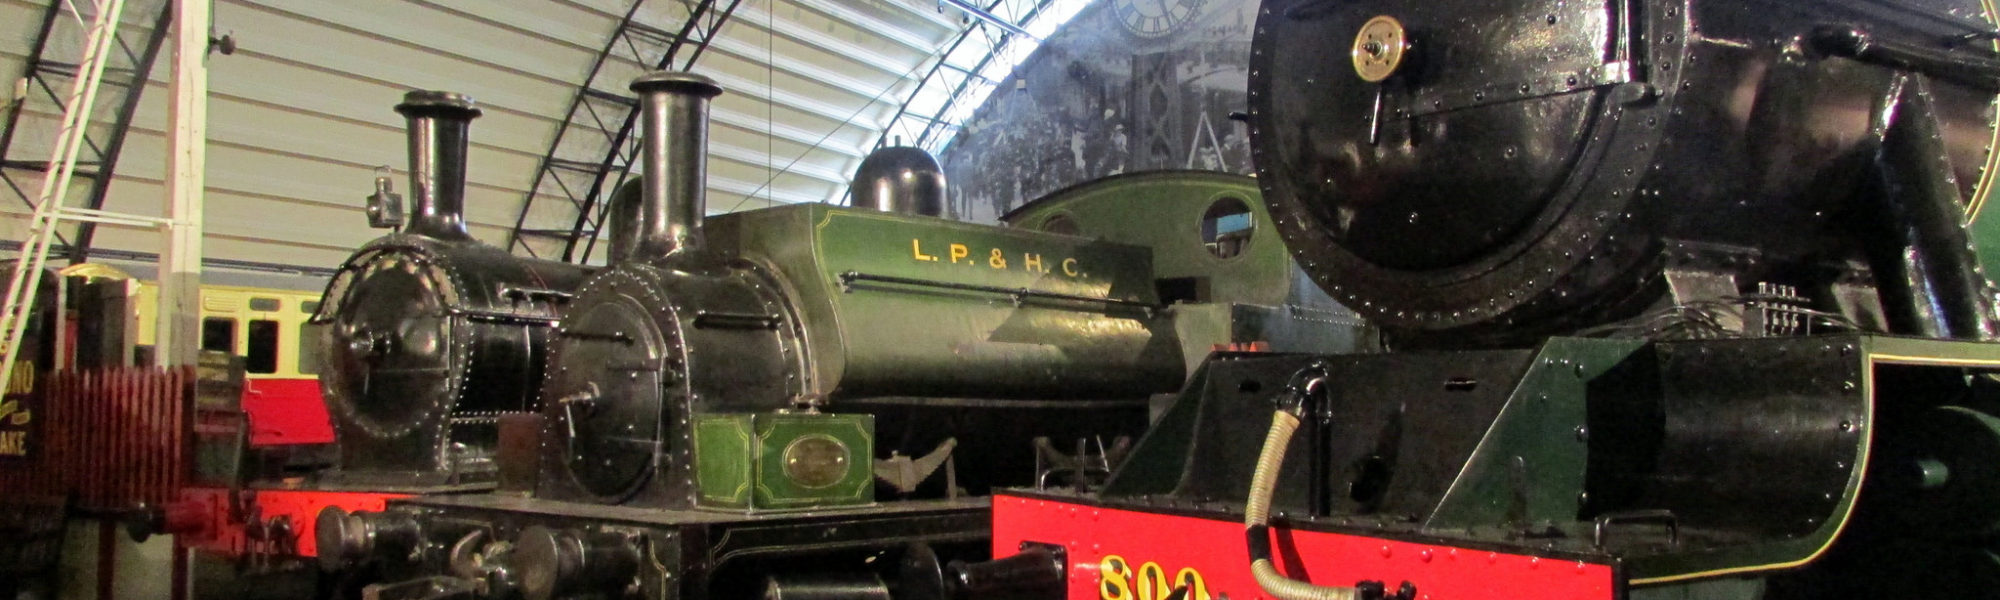 Ulster Folk and Transport Museum - Reading Tom - cc